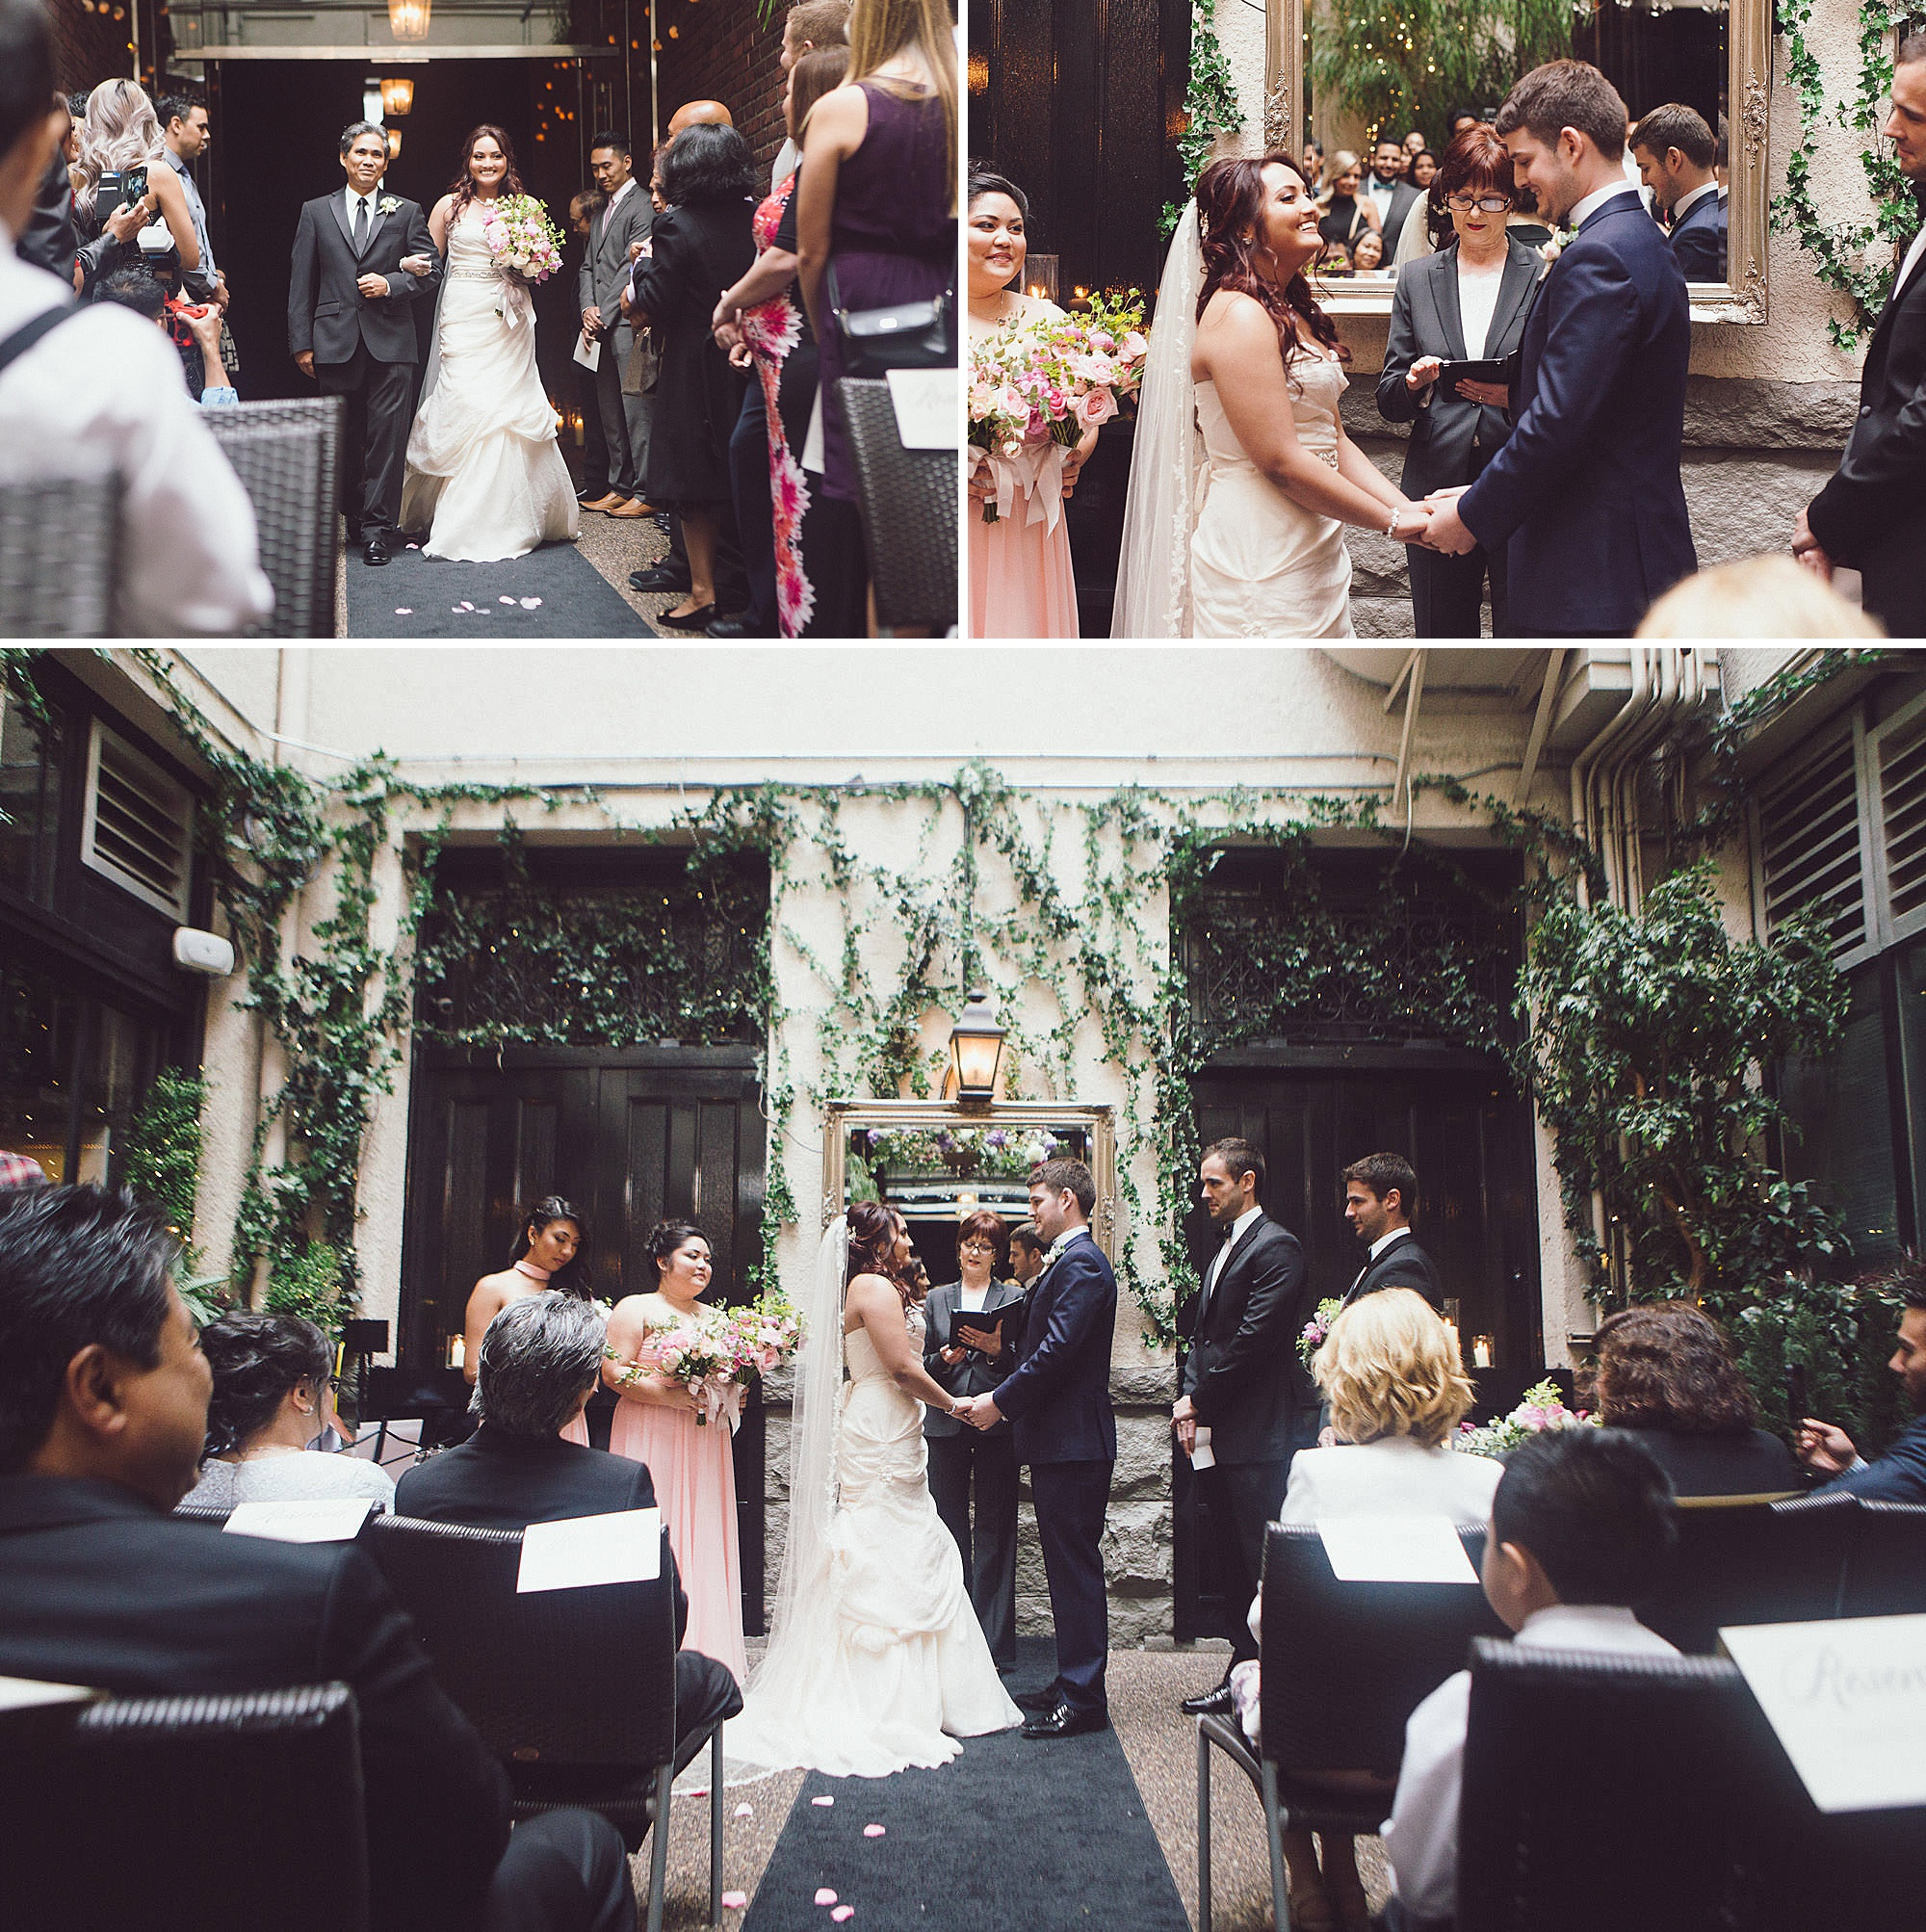 Cecille's dad walks her down the aisle at her wedding ceremony at the Brix and Mortar